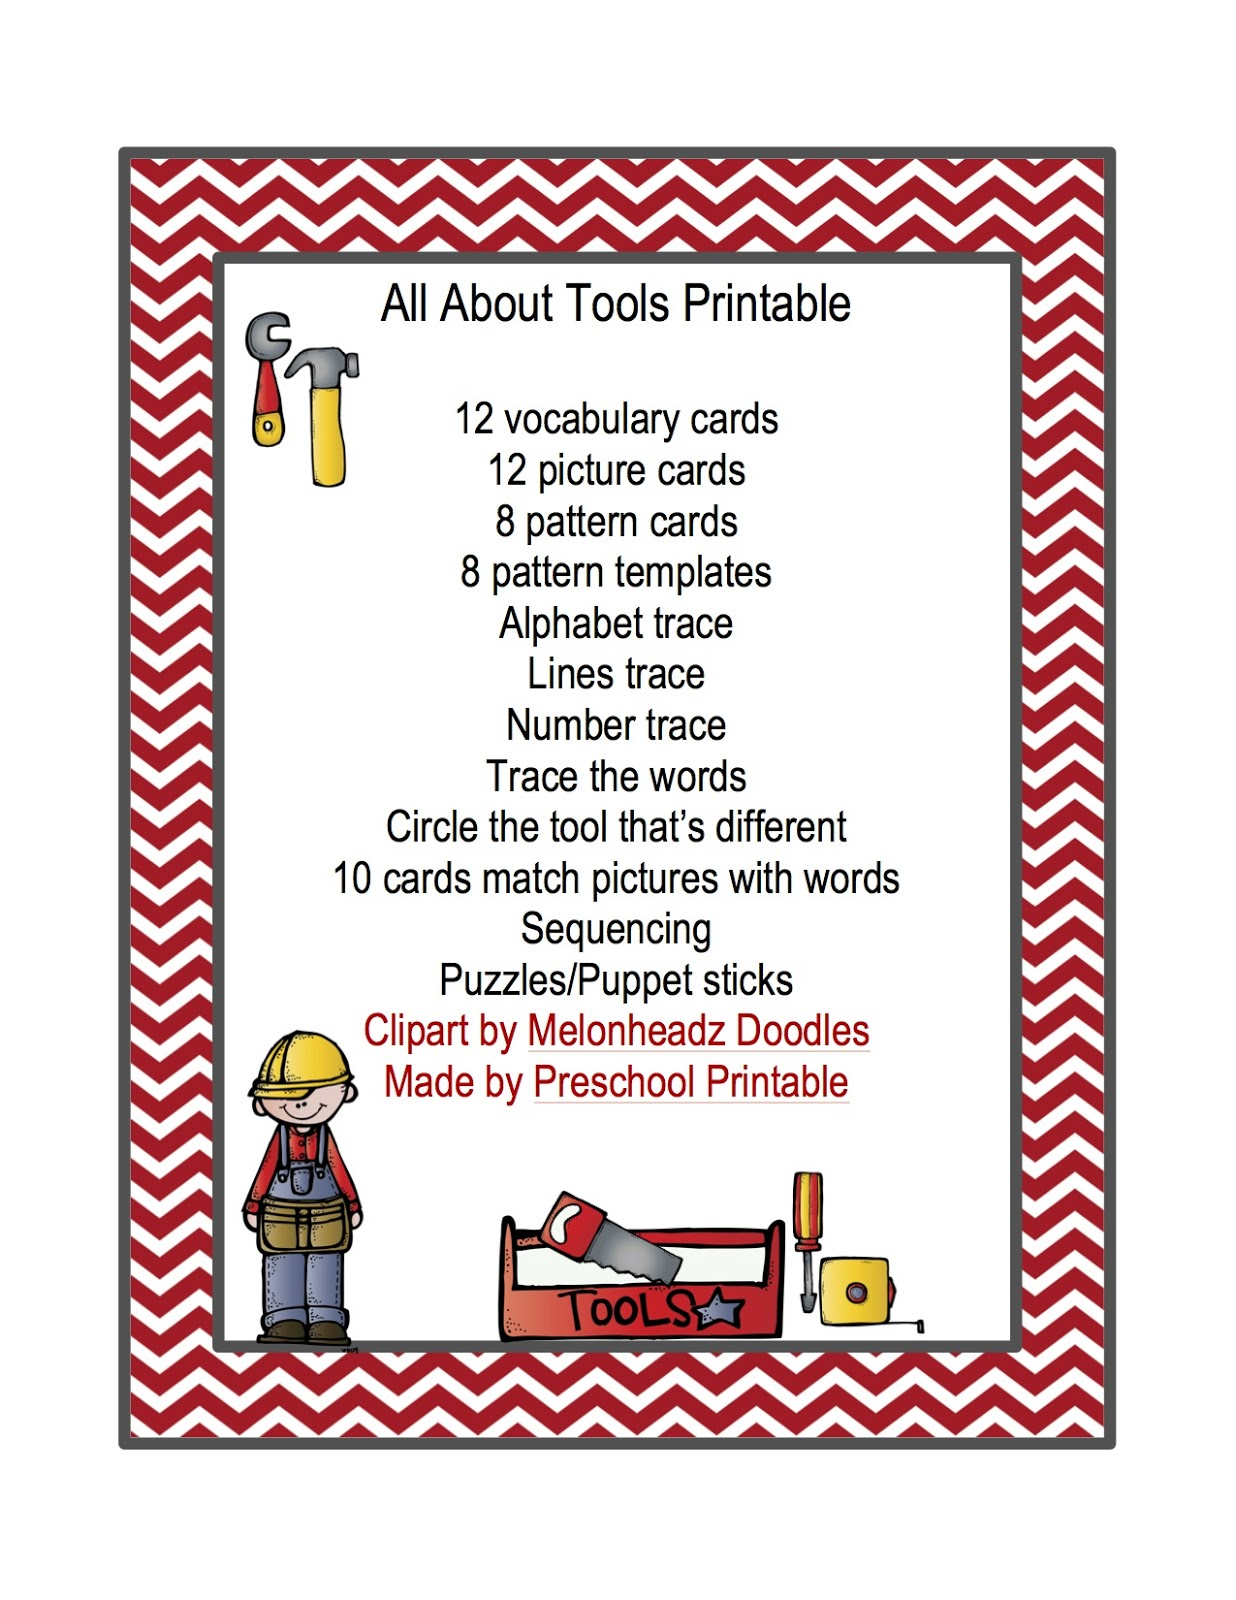 All About Tools Printable Preschool Printables